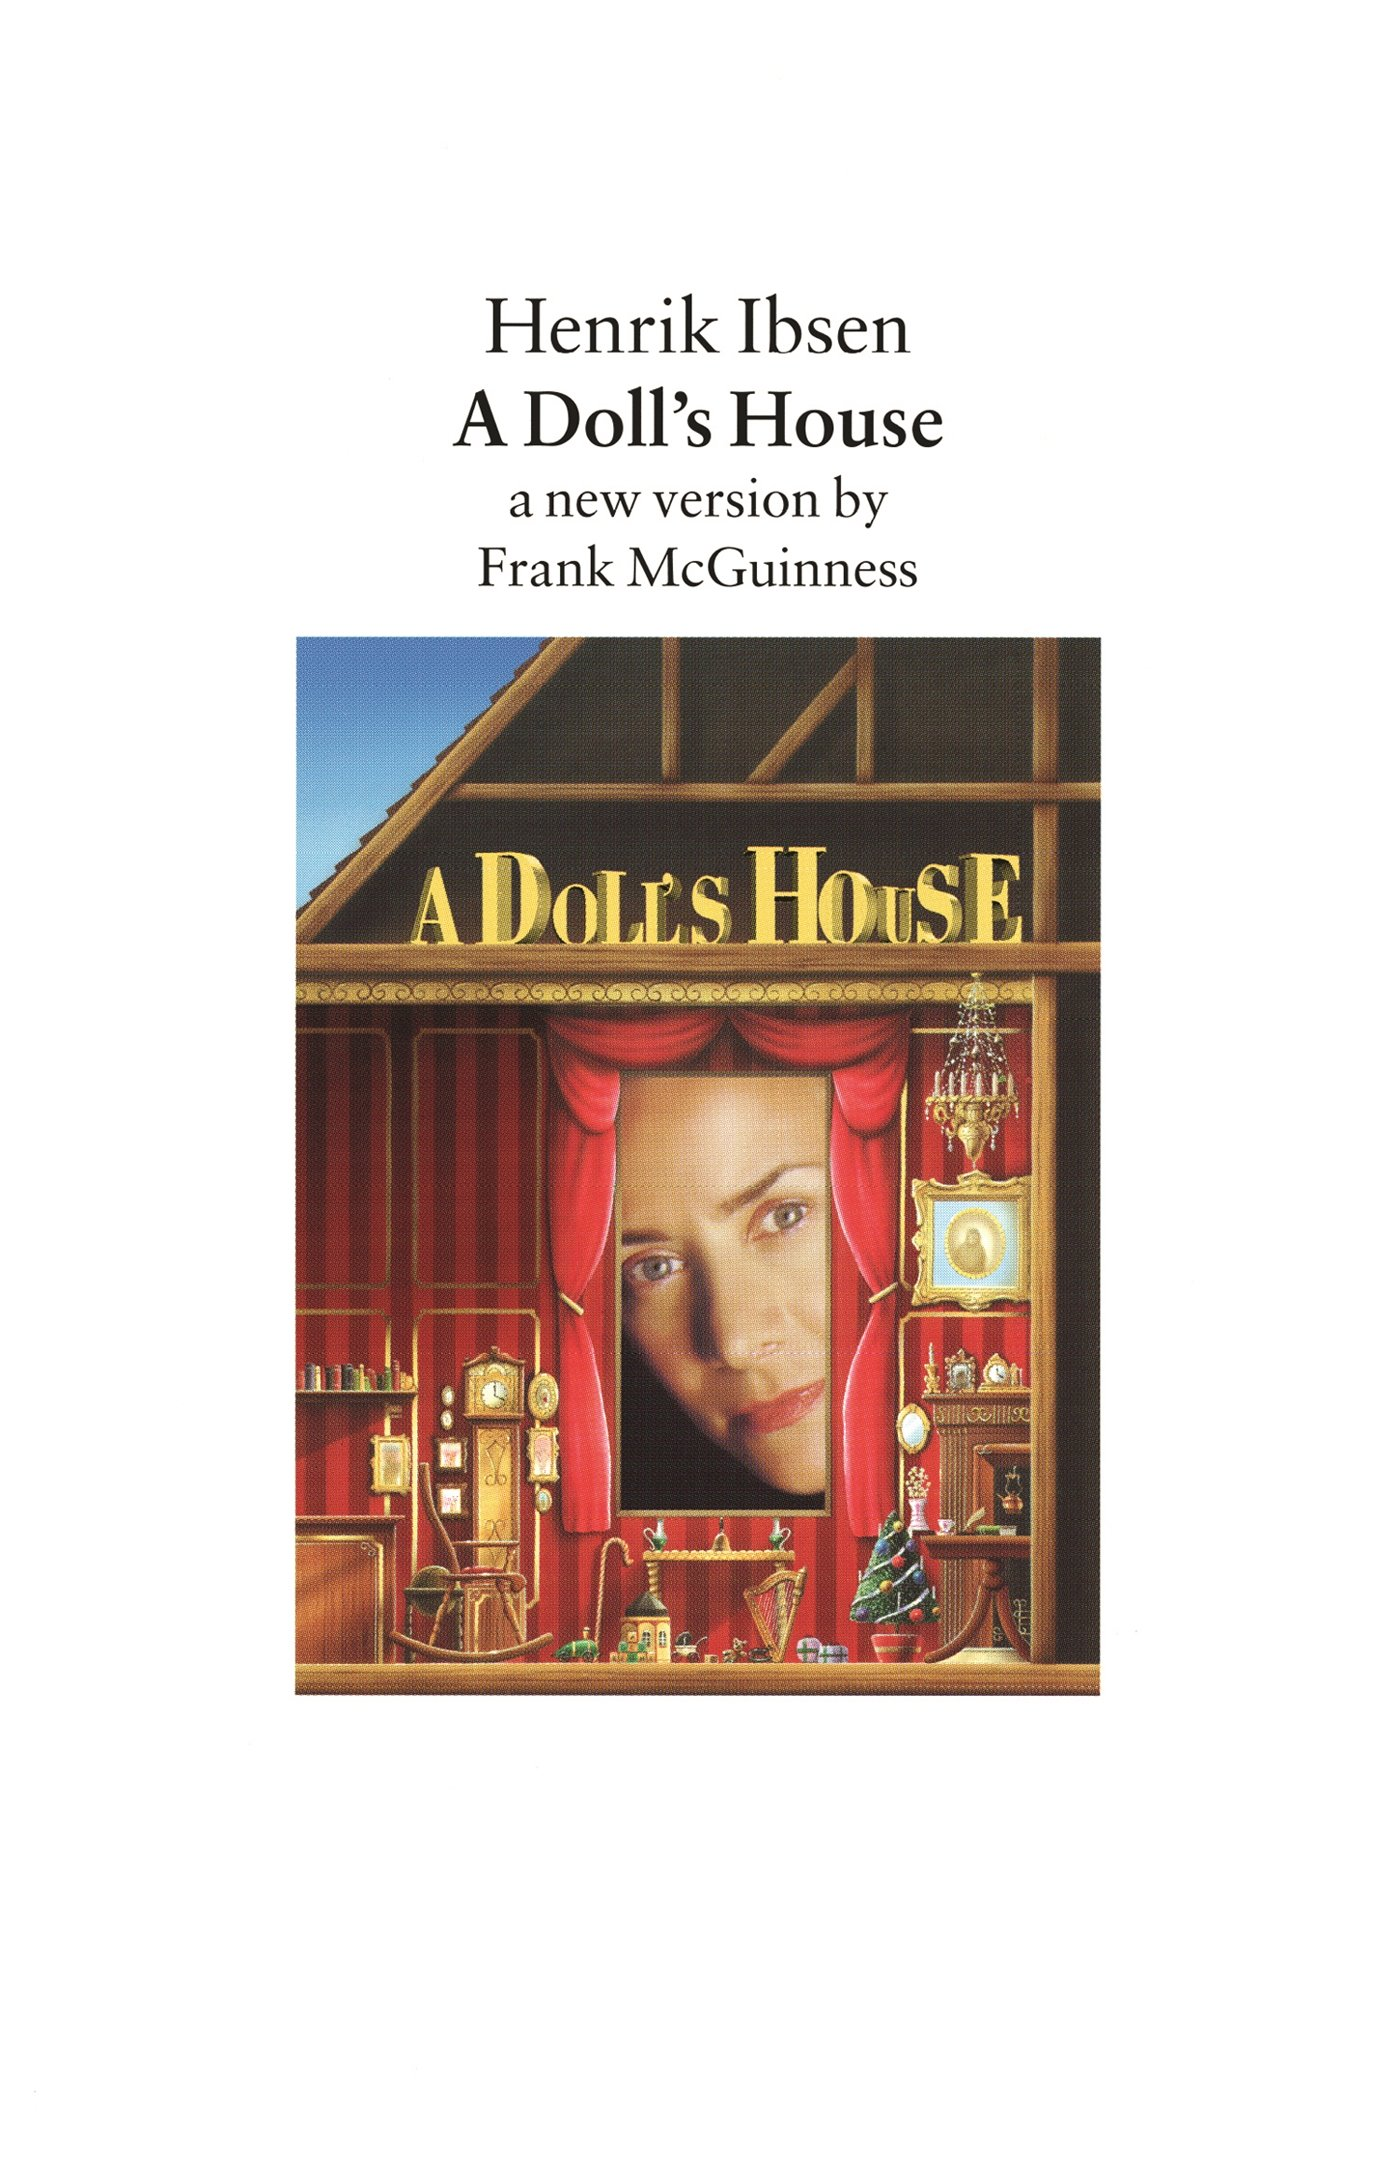 Amazon Com A Doll S House A New Version By Frank Mcguinness Faber